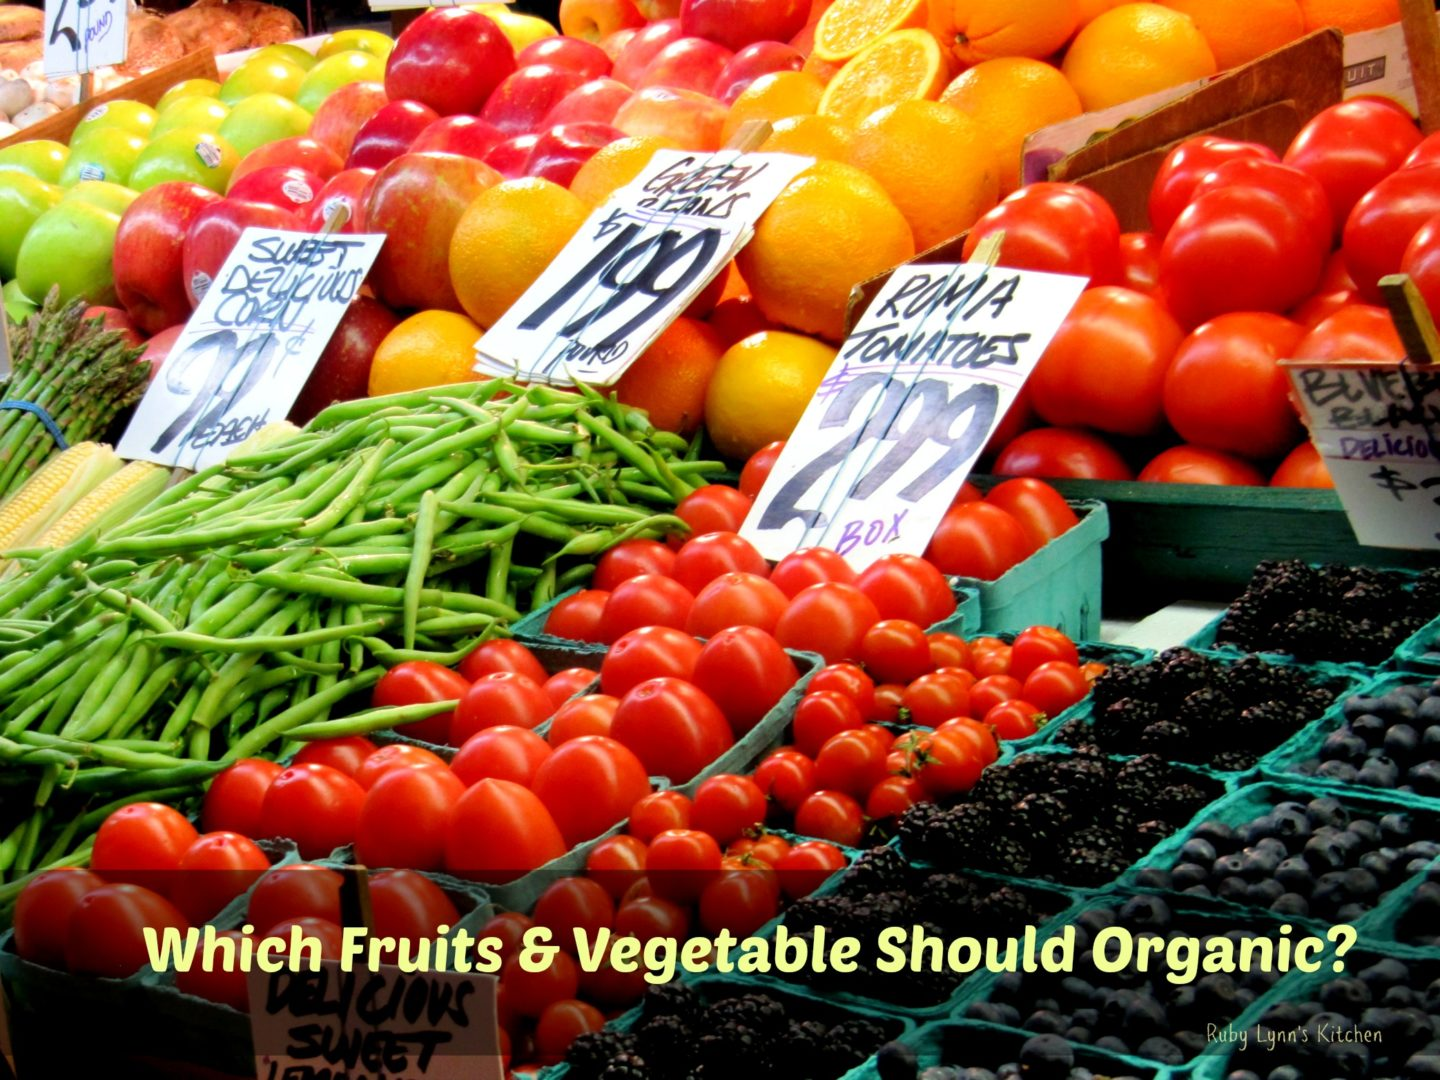 Which Fruits & Vegetables Should Be Organic